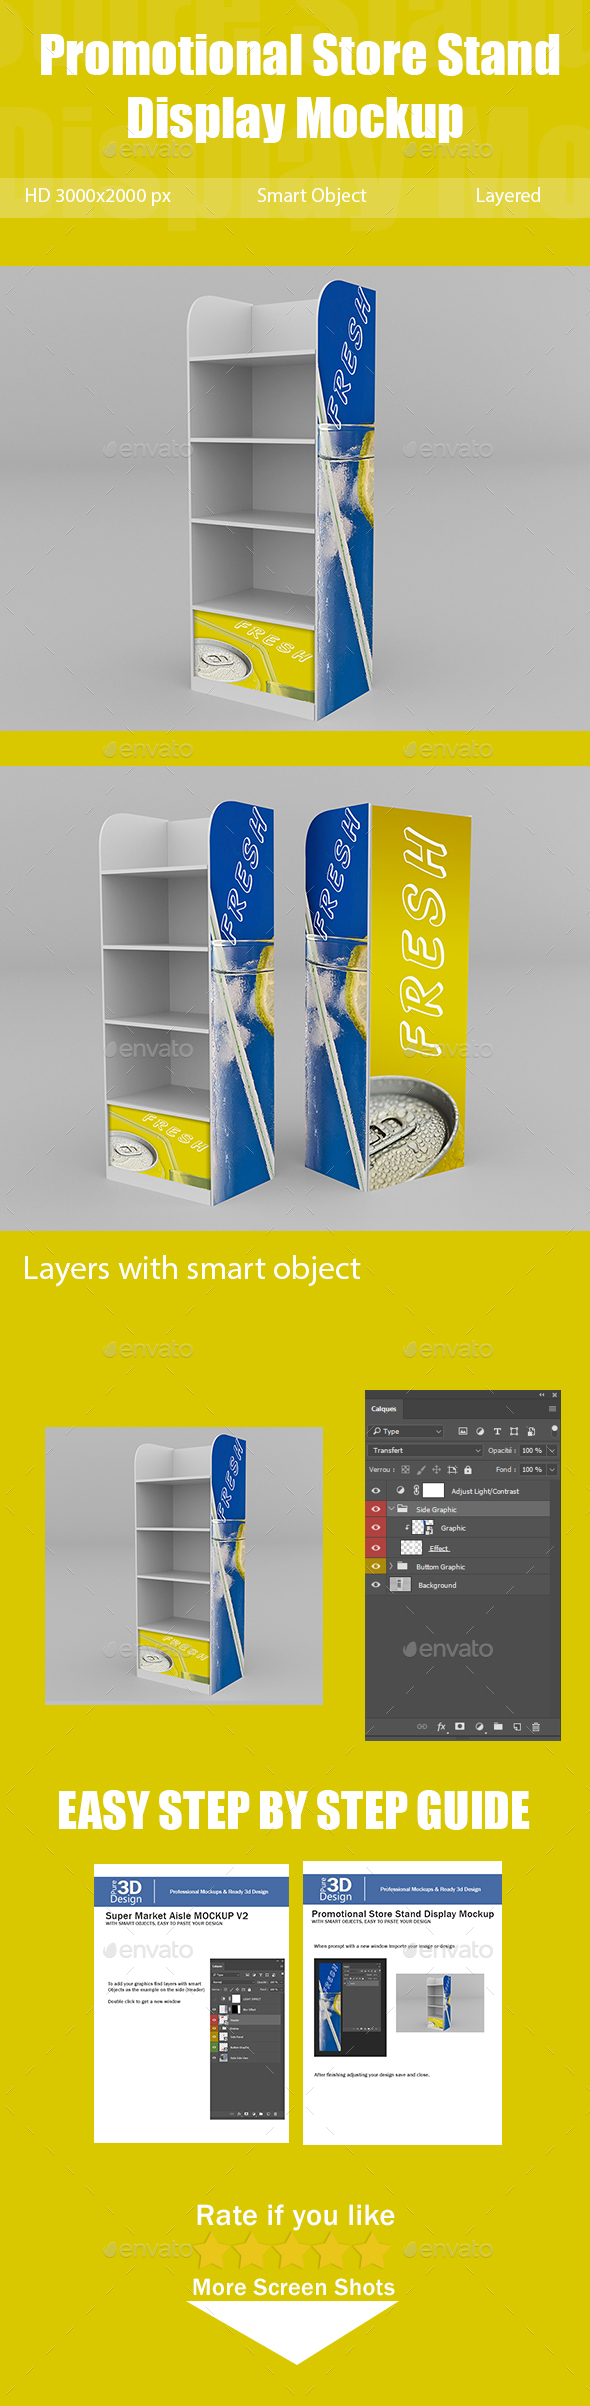 Promotional Store Stand Display Mockup - Multiple Displays